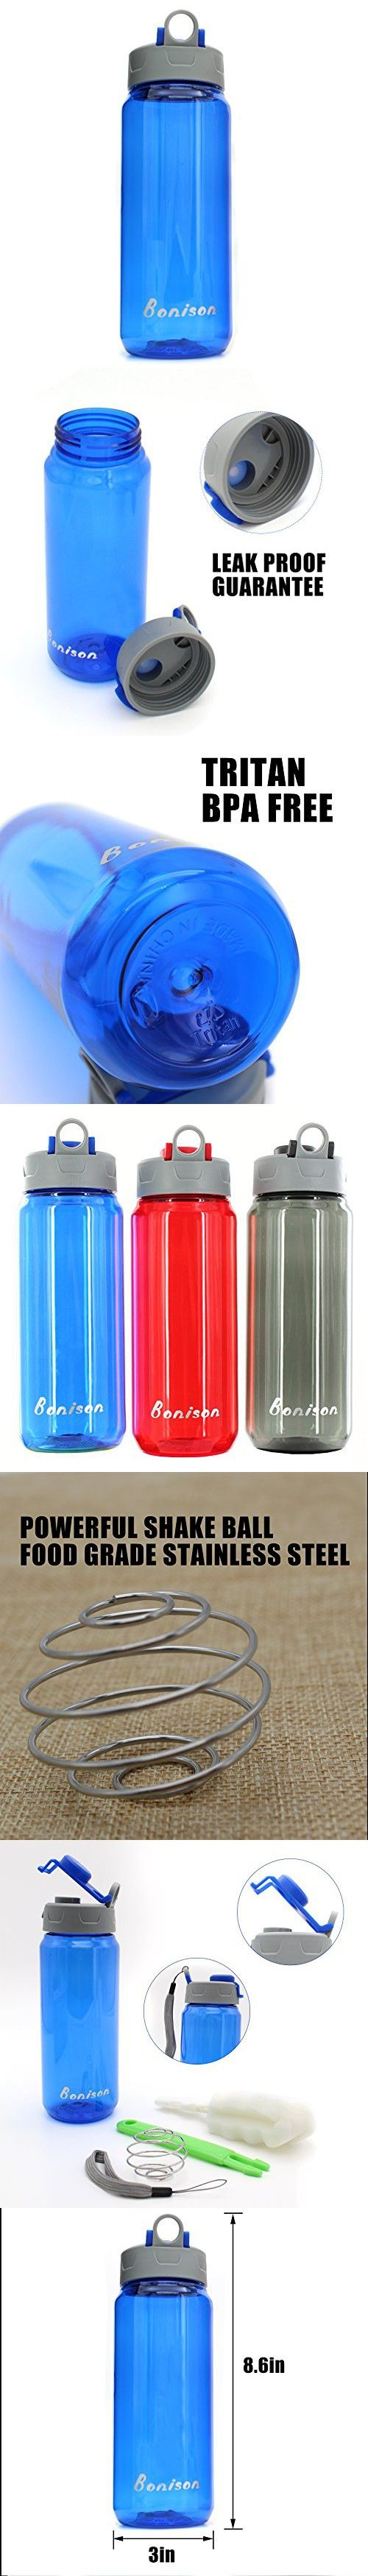 Clearance Sale-25 Oz Shake Bottle With Flip Top Spout Mixer Ball To Mix Protein Powder Easy Shaker Water Bottle (Blue)